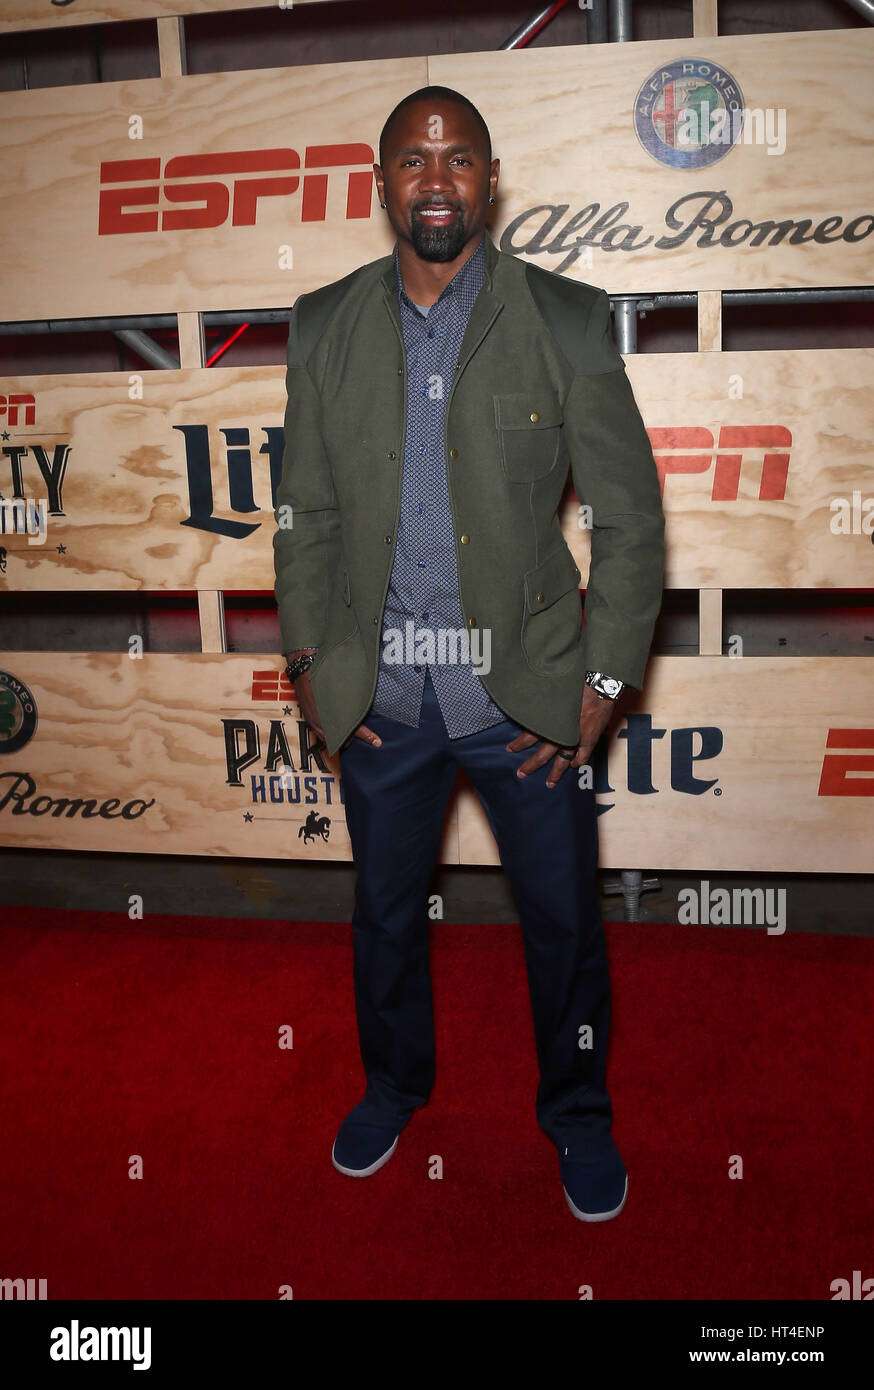 ESPN The Party Houston - Arrivals Featuring: Charles Woodson